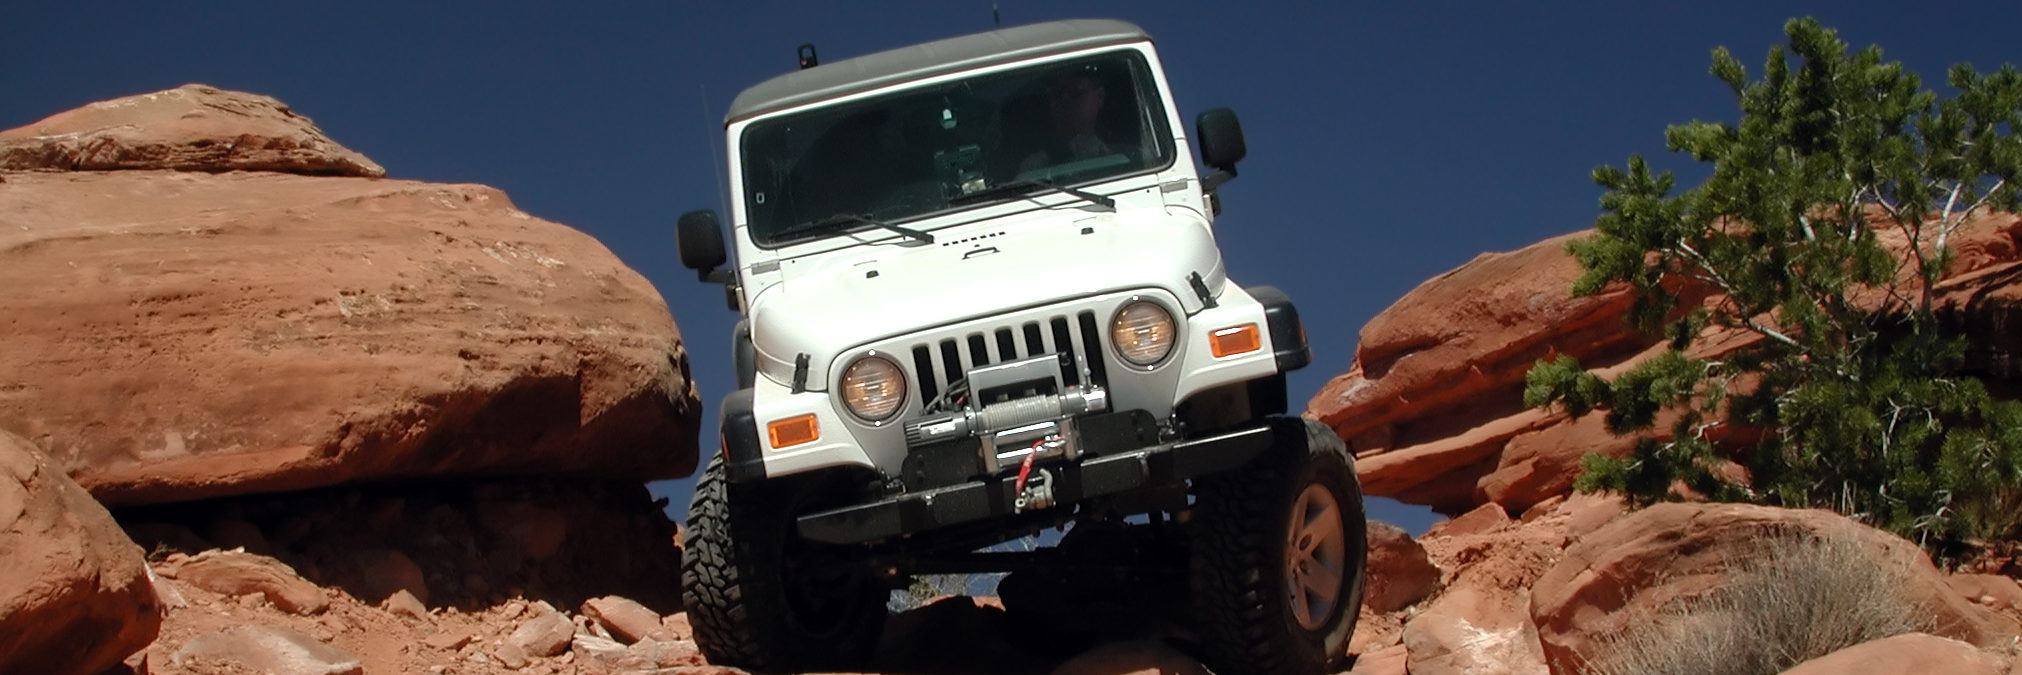 jeep rubicon iii